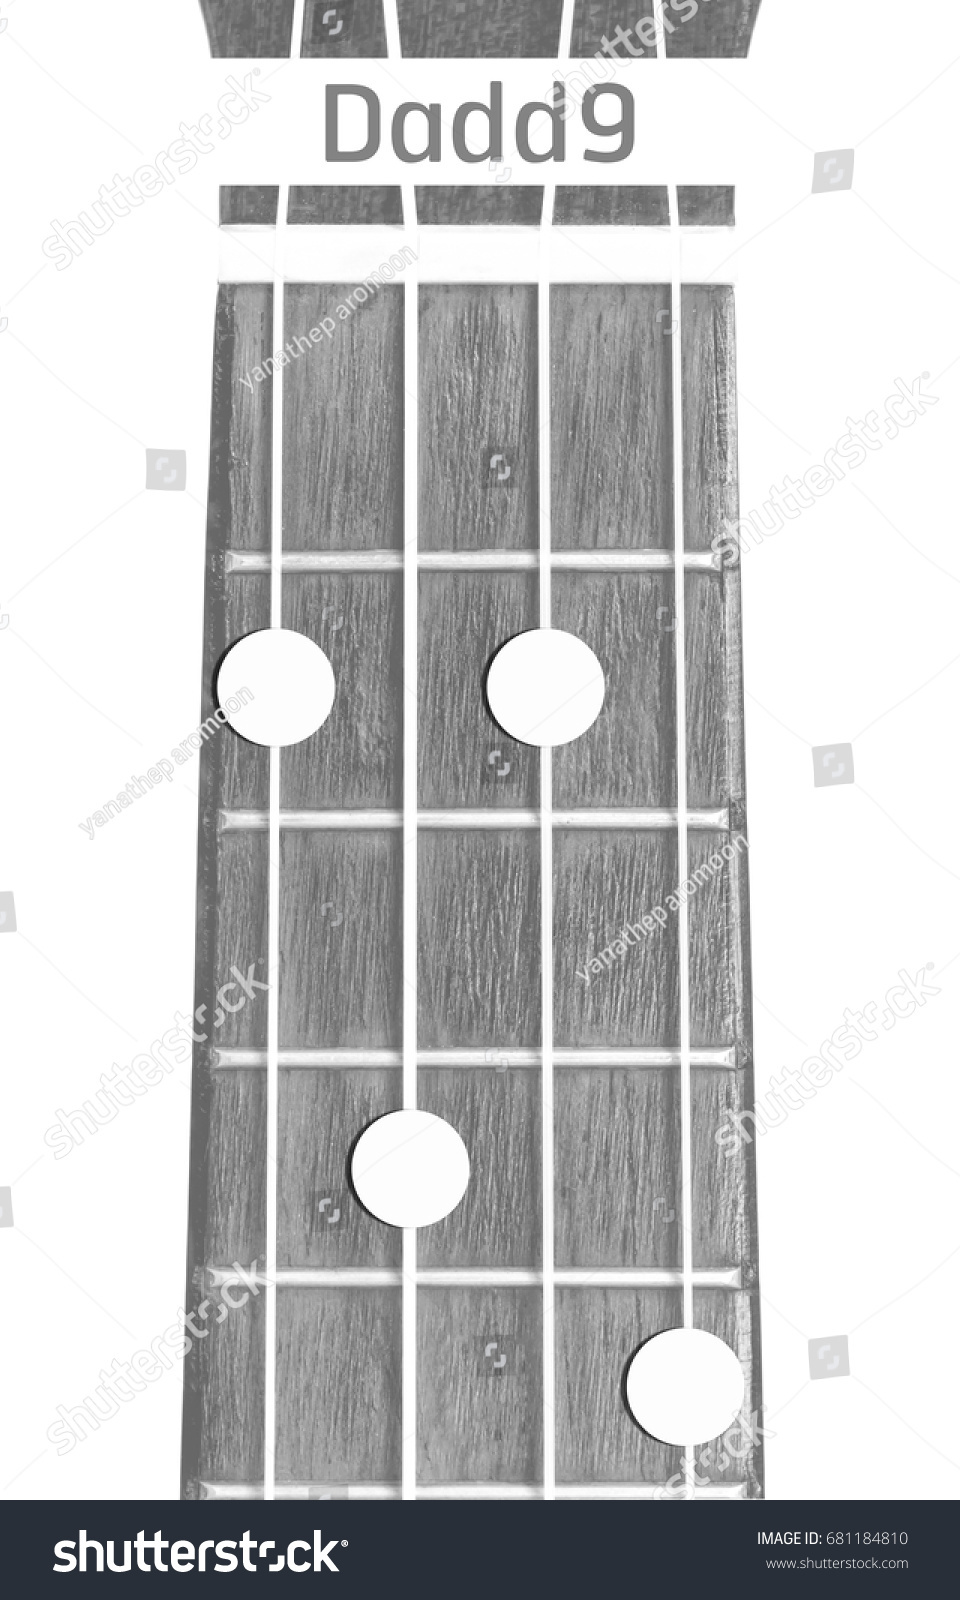 Ukulele Chord Dadd 9 On White Background Stock Photo Edit Now